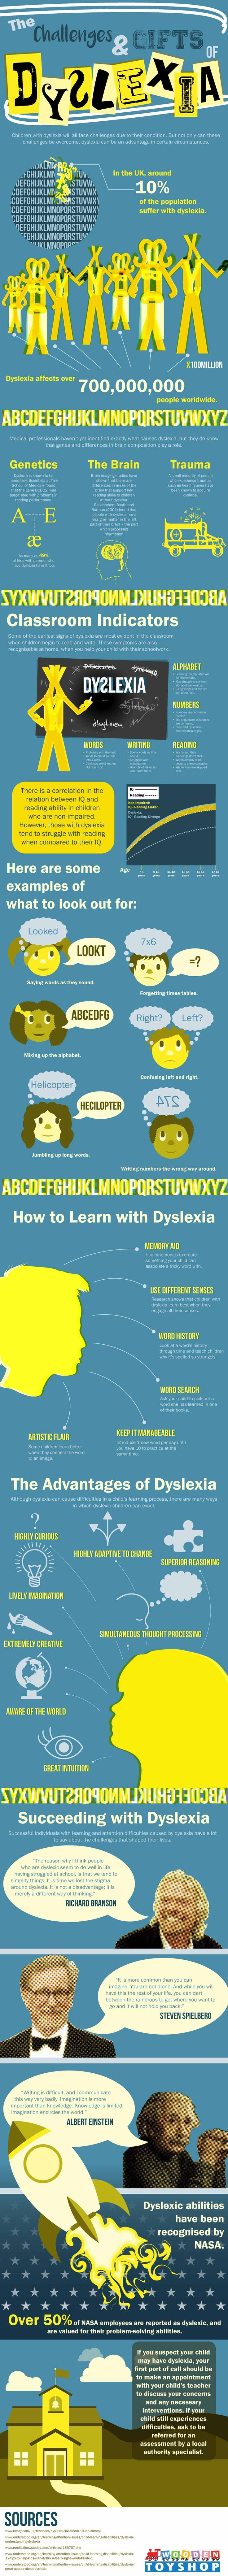 The Challenges and Gifts of Dyslexia